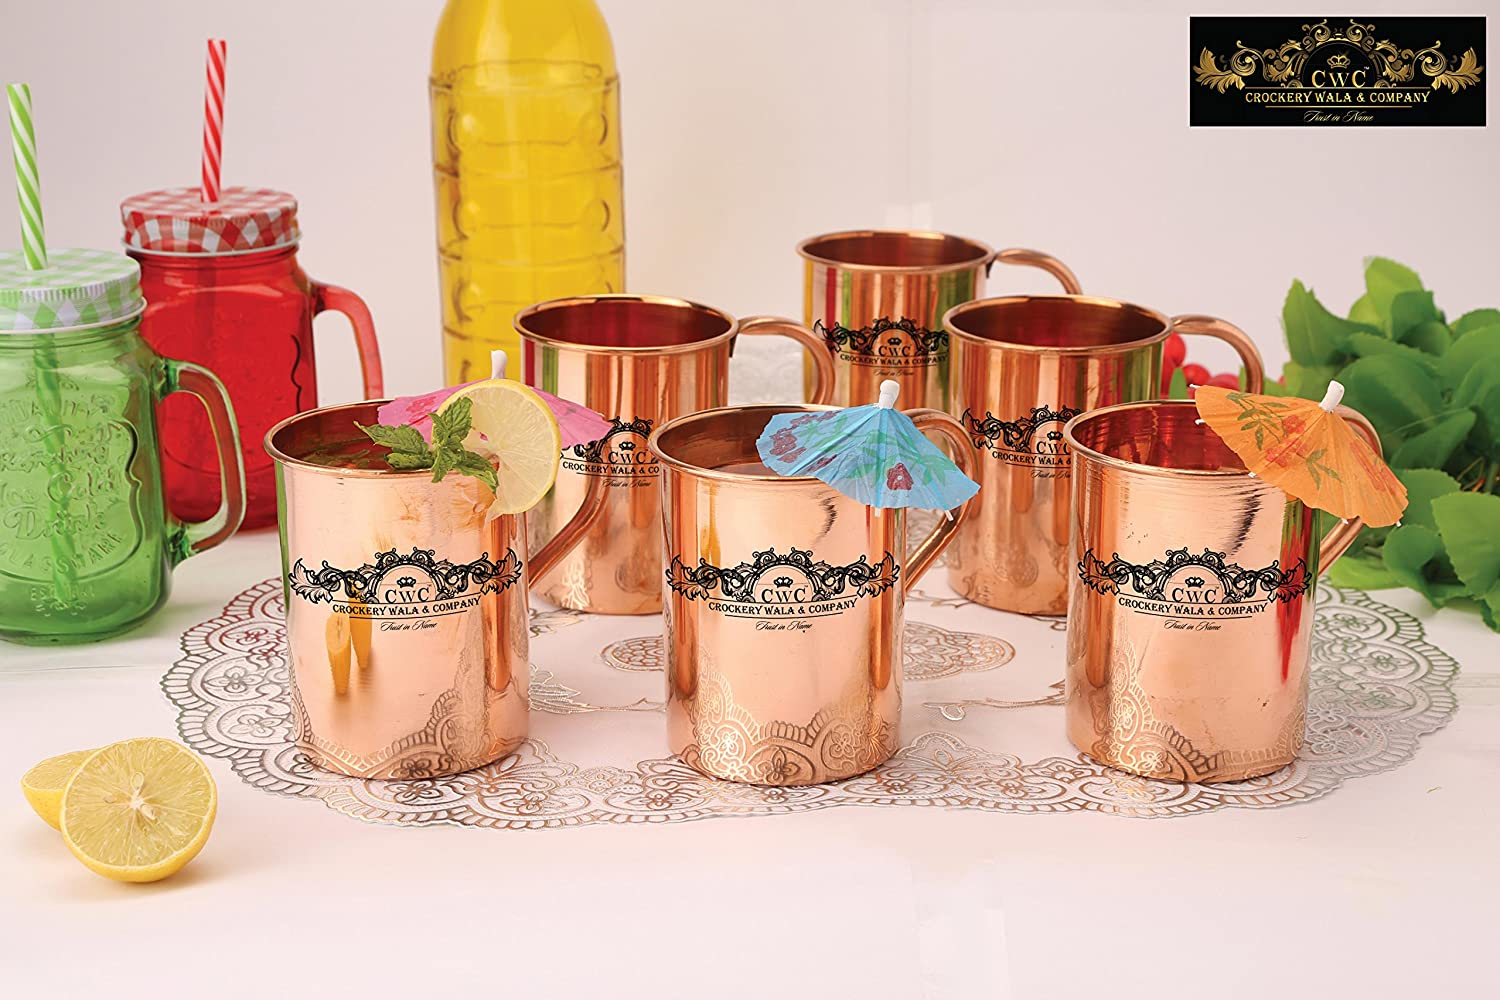 Crockery wala and Company Premium Set of 6 Copper Pipe Plain Mugs made of 99.5% Pure Solid Copper, Great for cold drinks and for kitchen and bar purposes